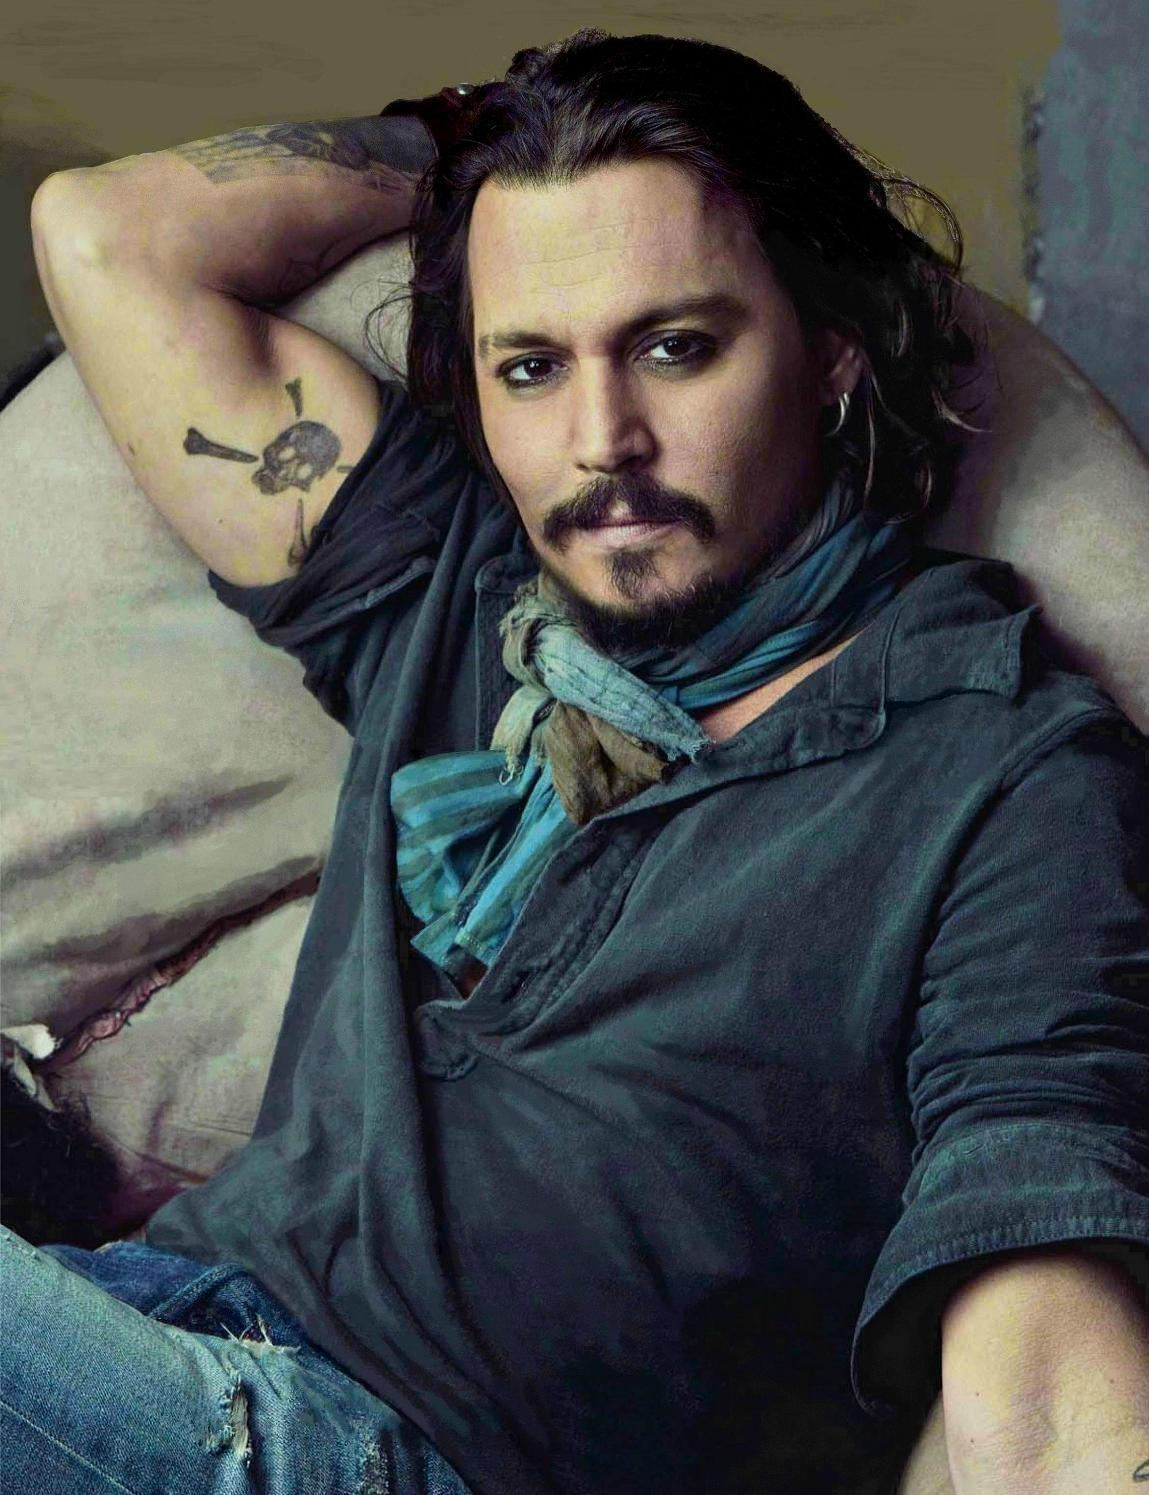 Johnny Depp UK Vanity Fair 2011 Jan Depp Photo 18182808